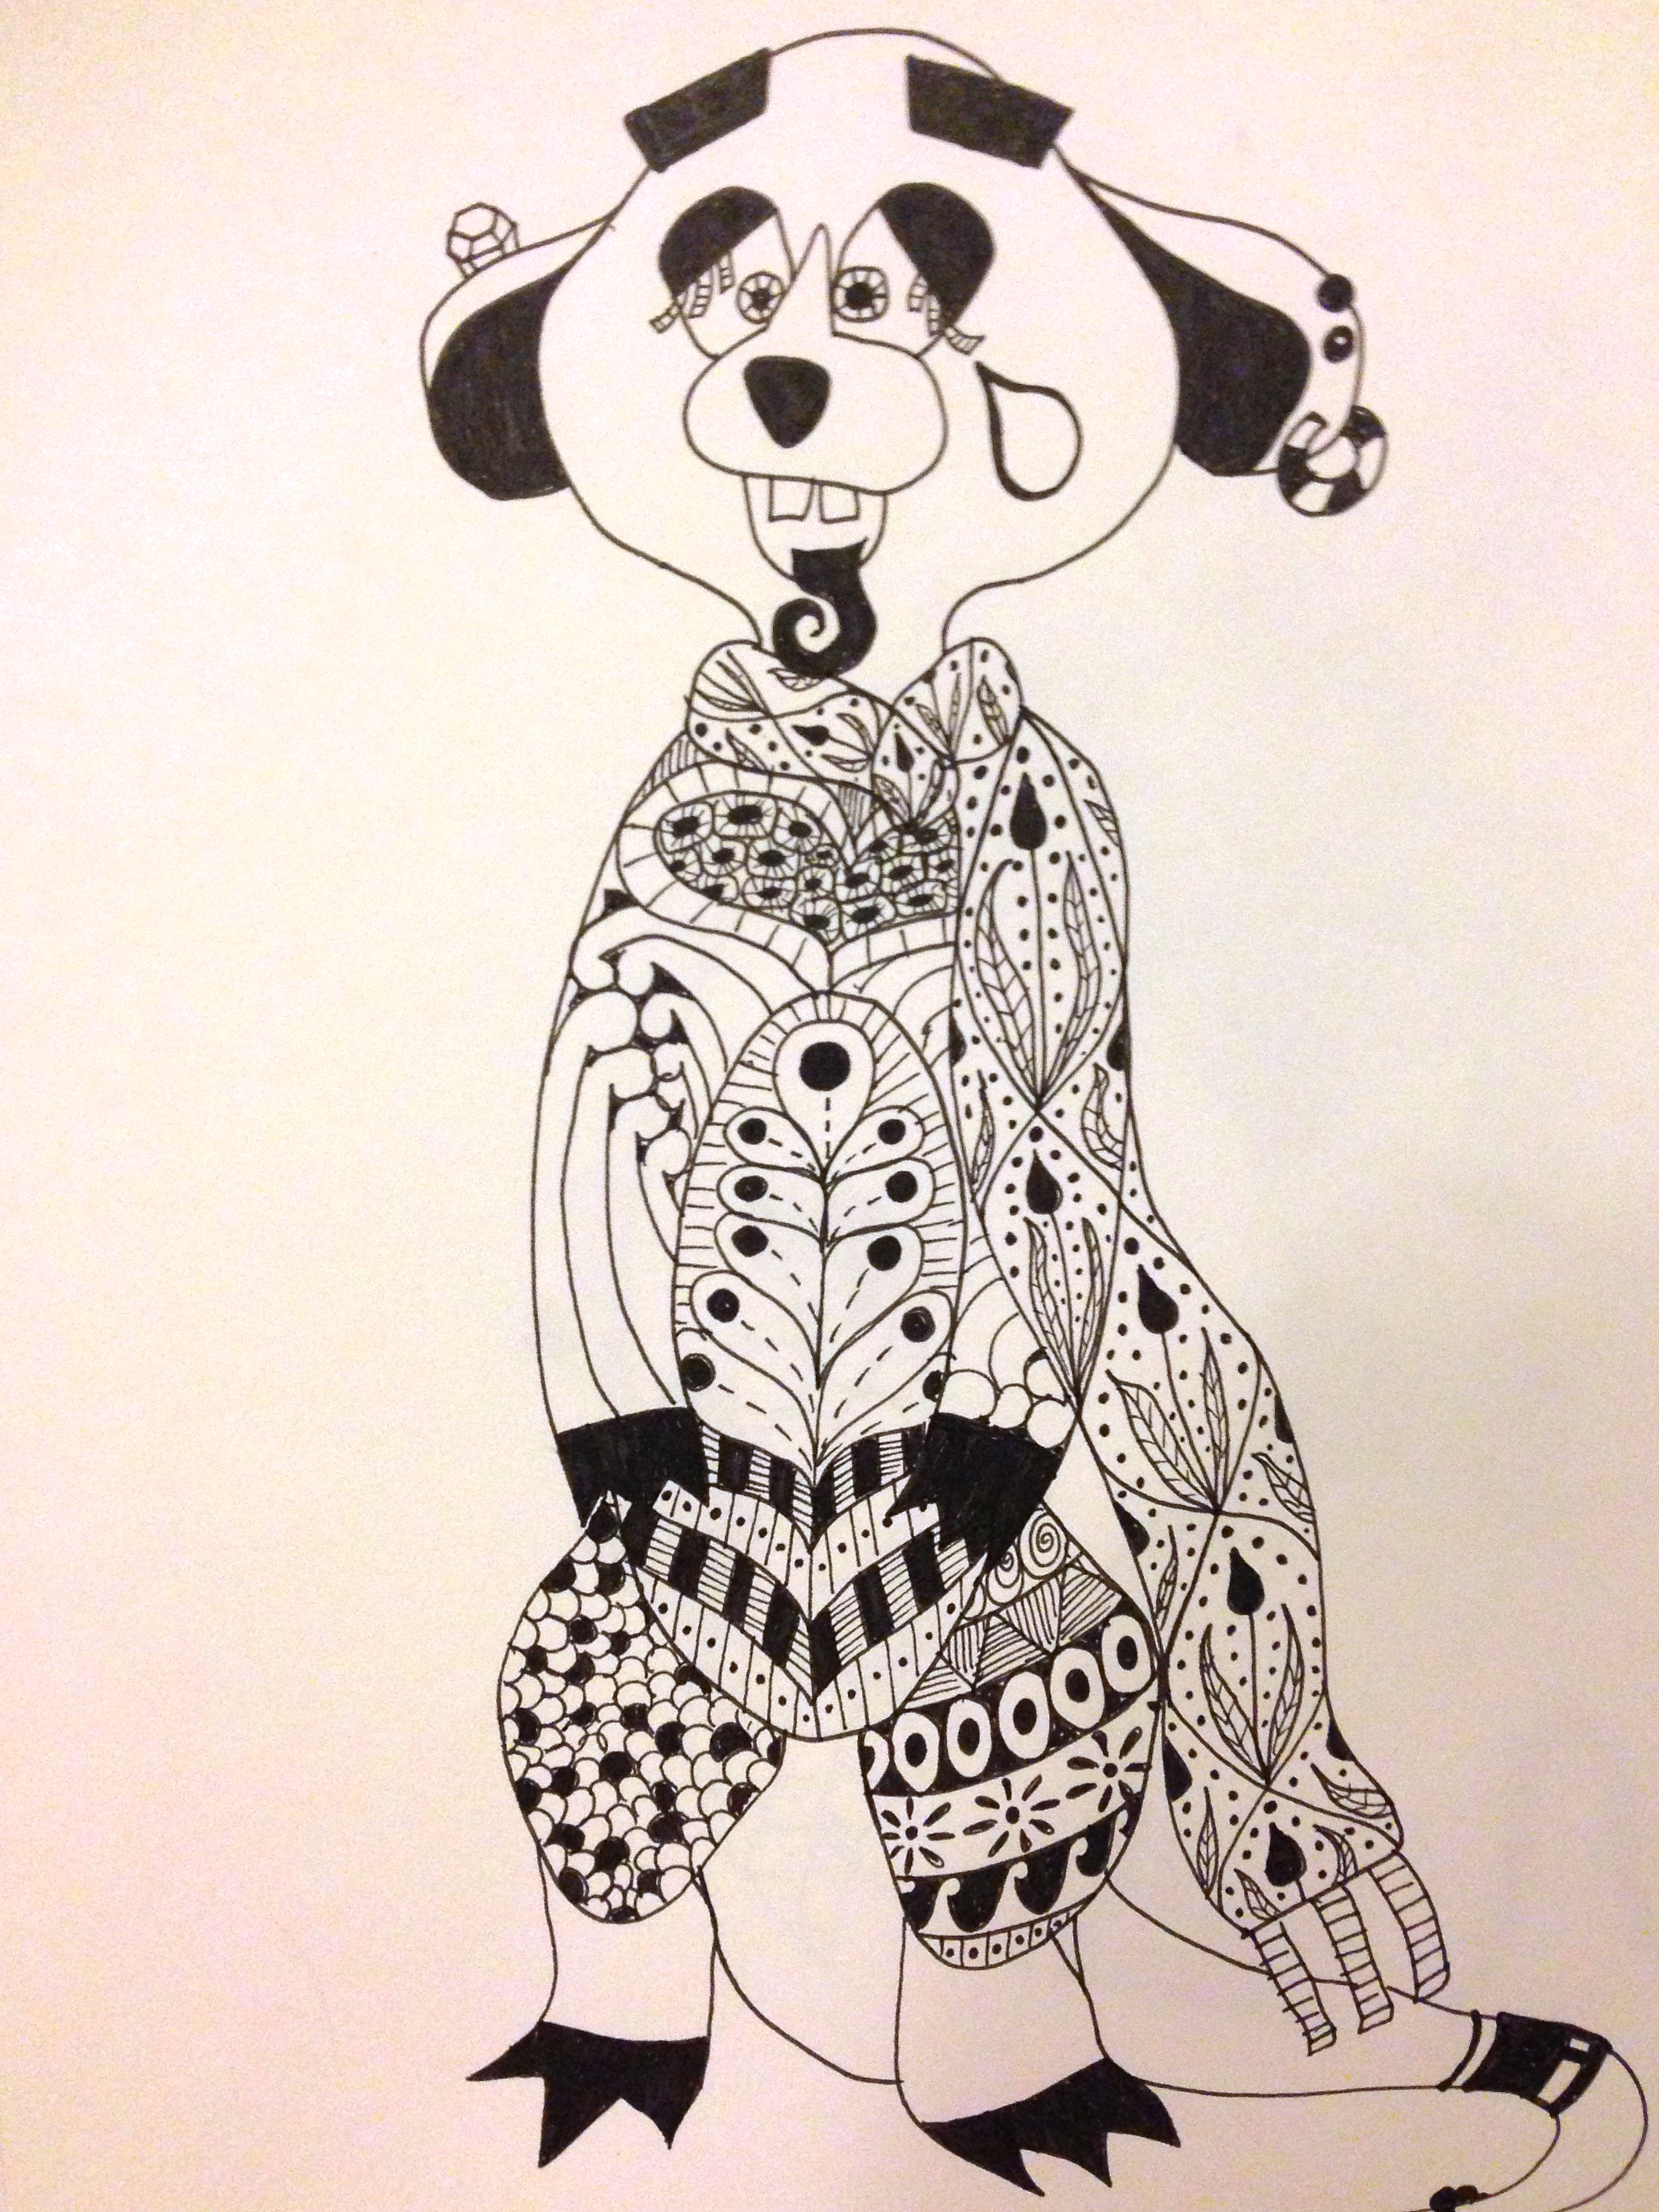 Malcolm the Maladjusted Meerkat